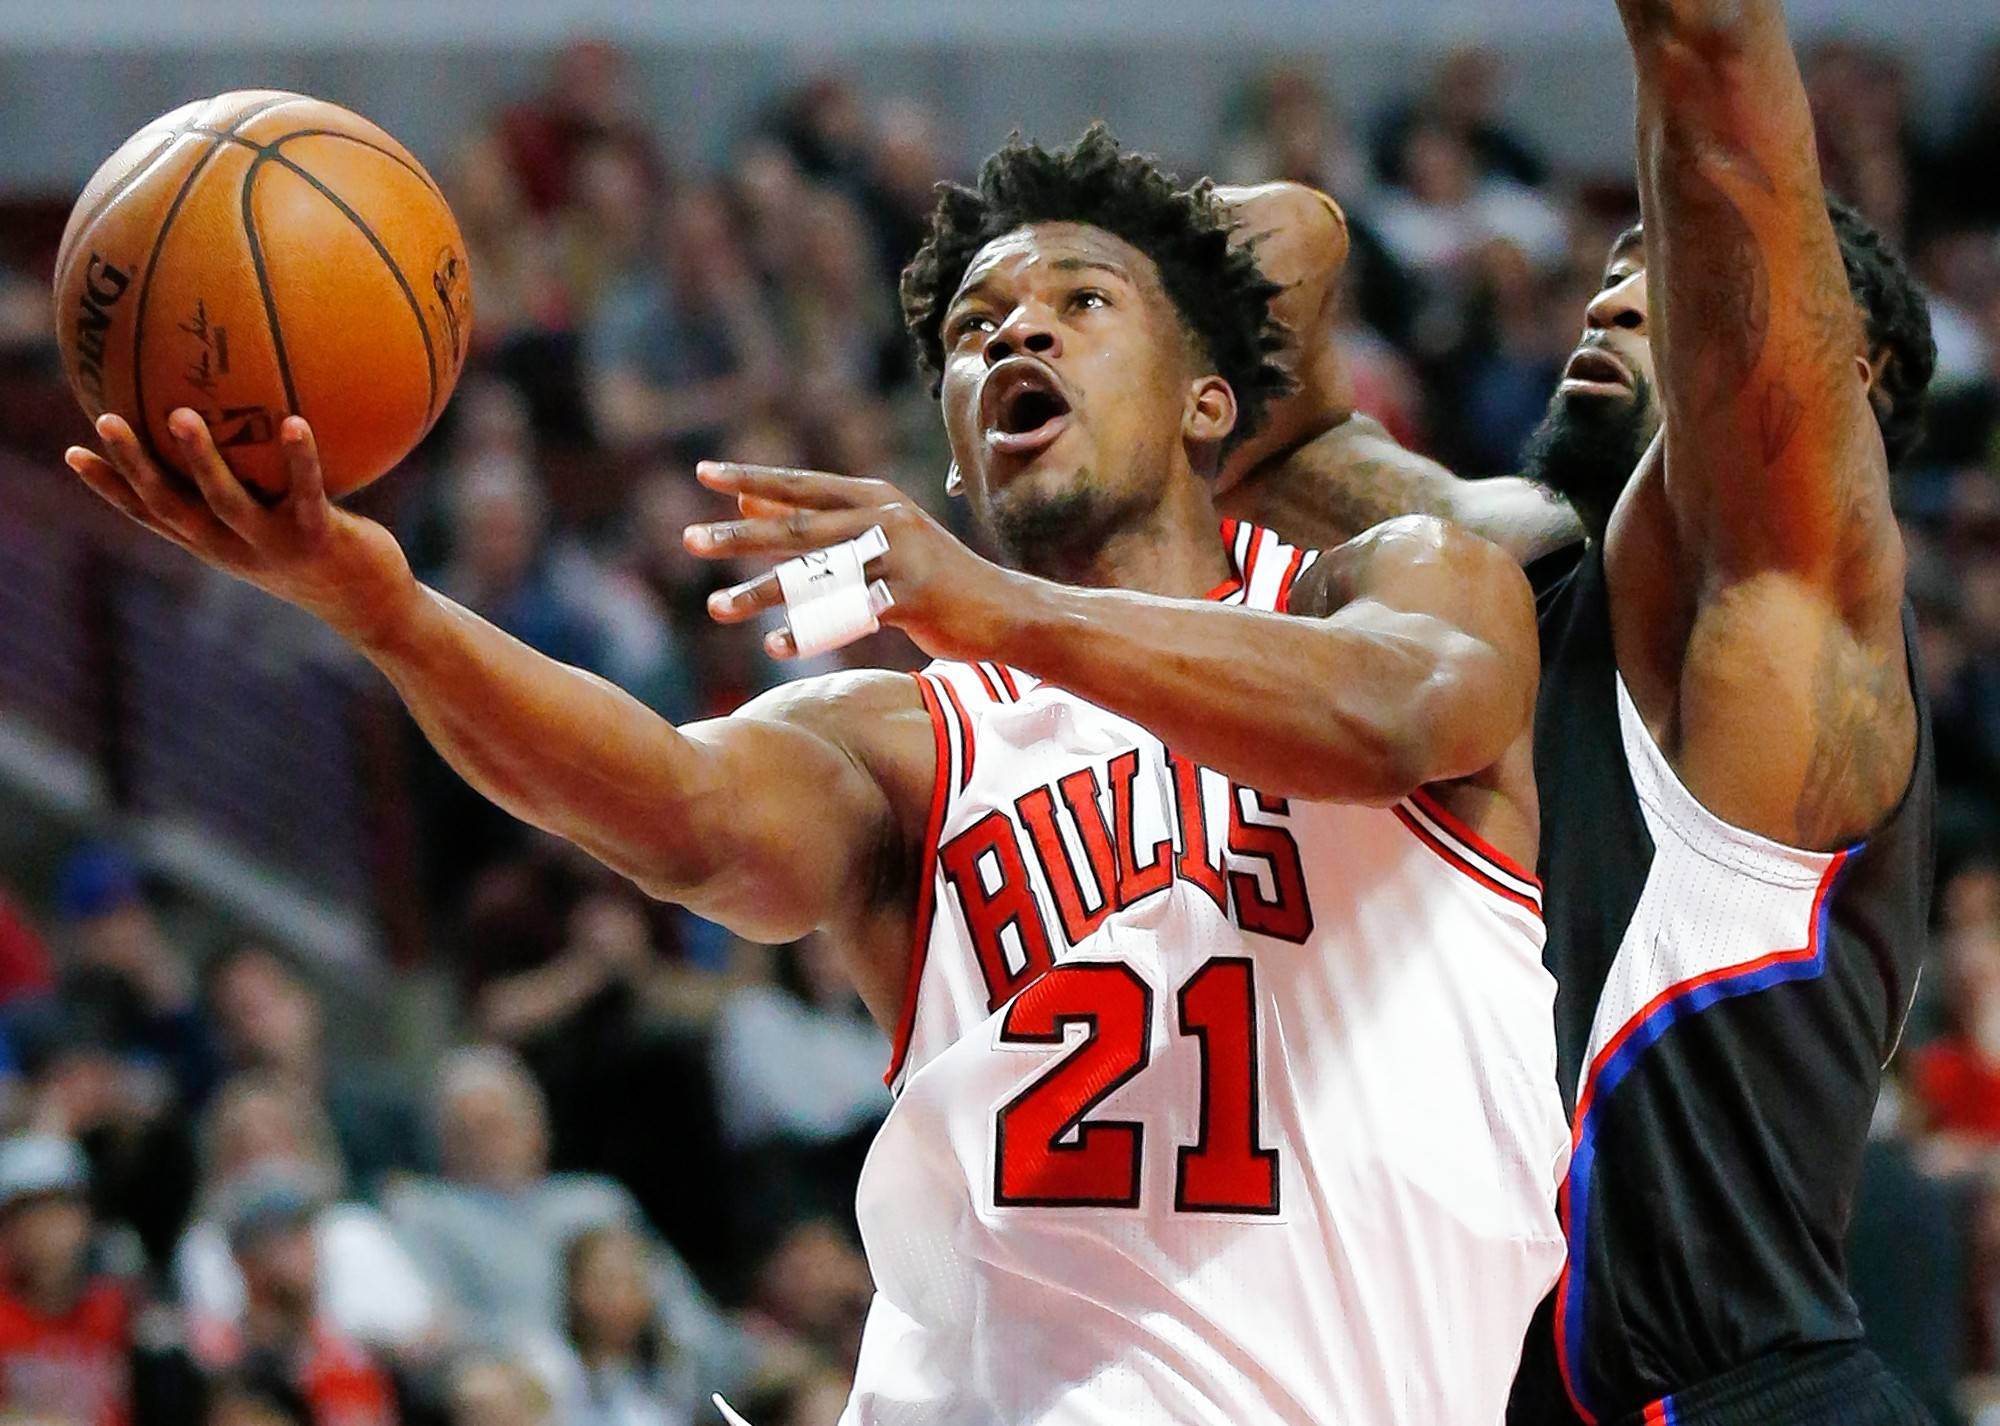 Chicago Bulls' slim hopes rest with reviving Jimmy Butler